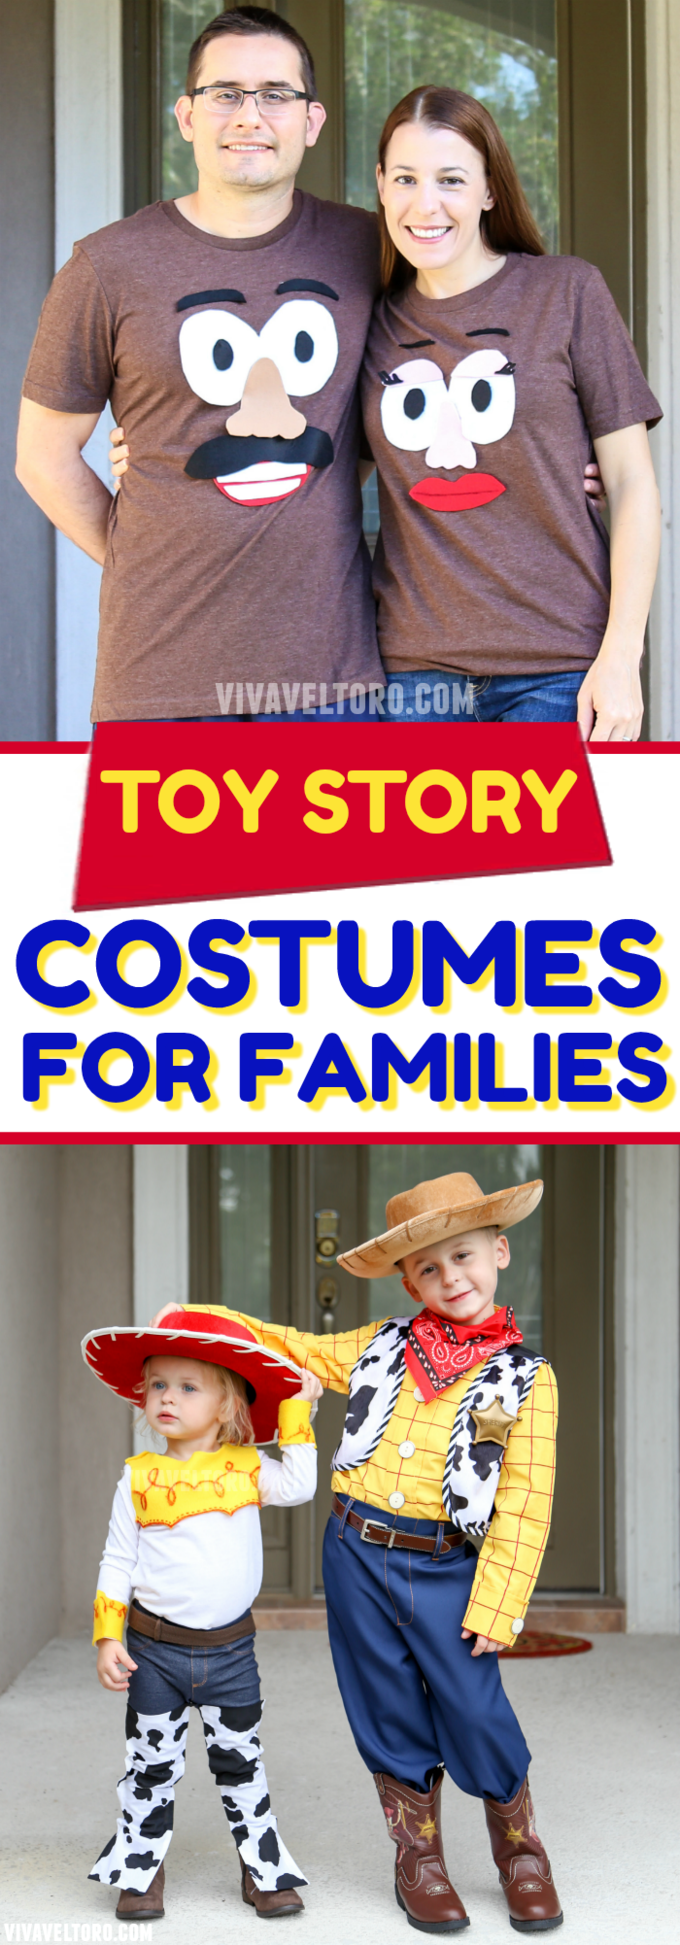 Want Toy Story Halloween Costumes for the whole family? We